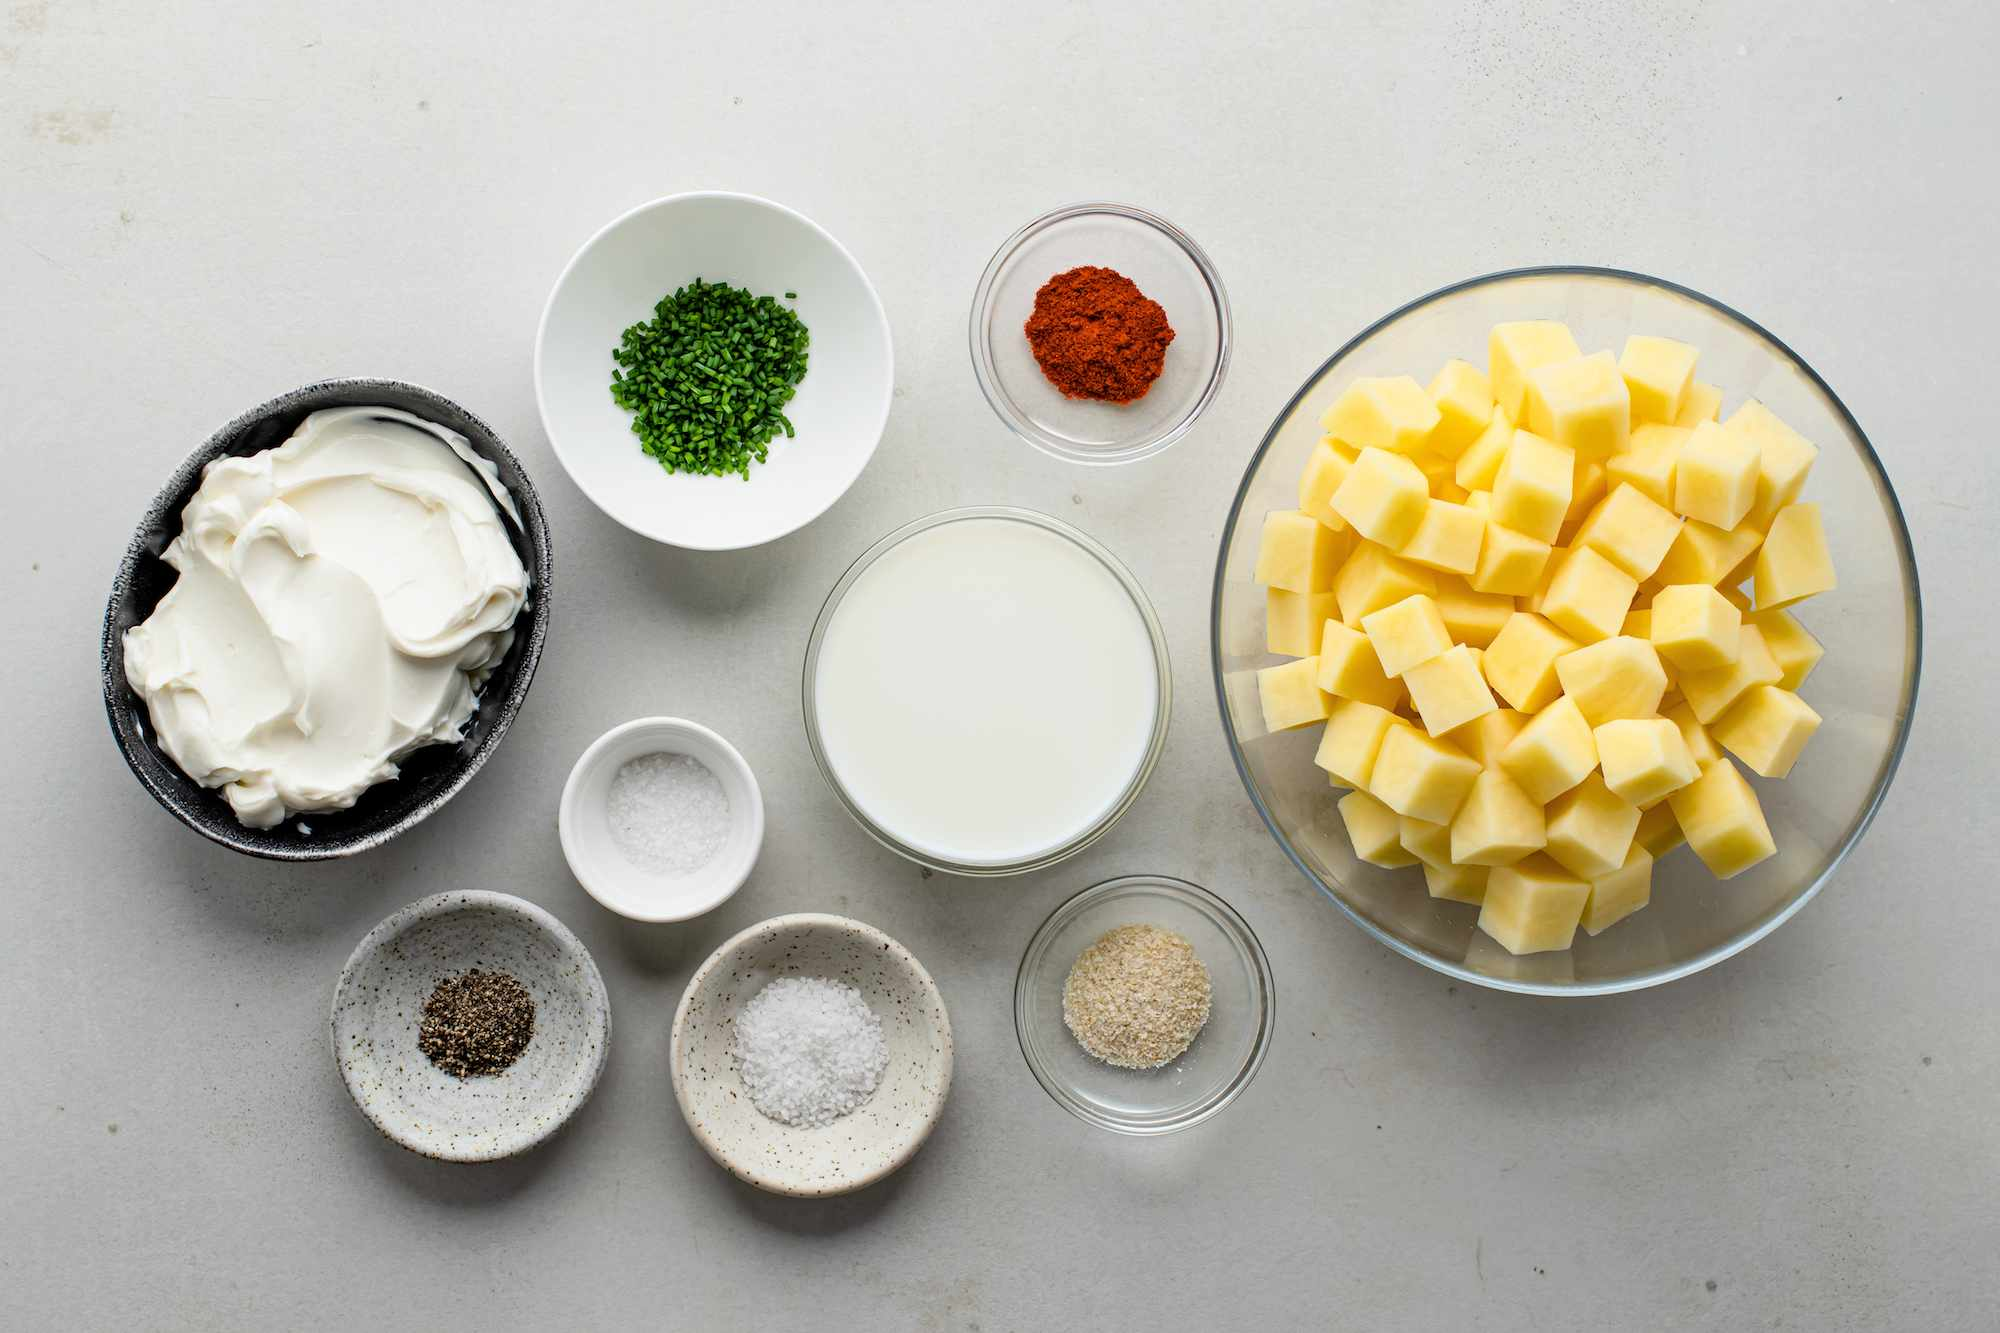 Ingredients for easy potato casserole with cream cheese and chives